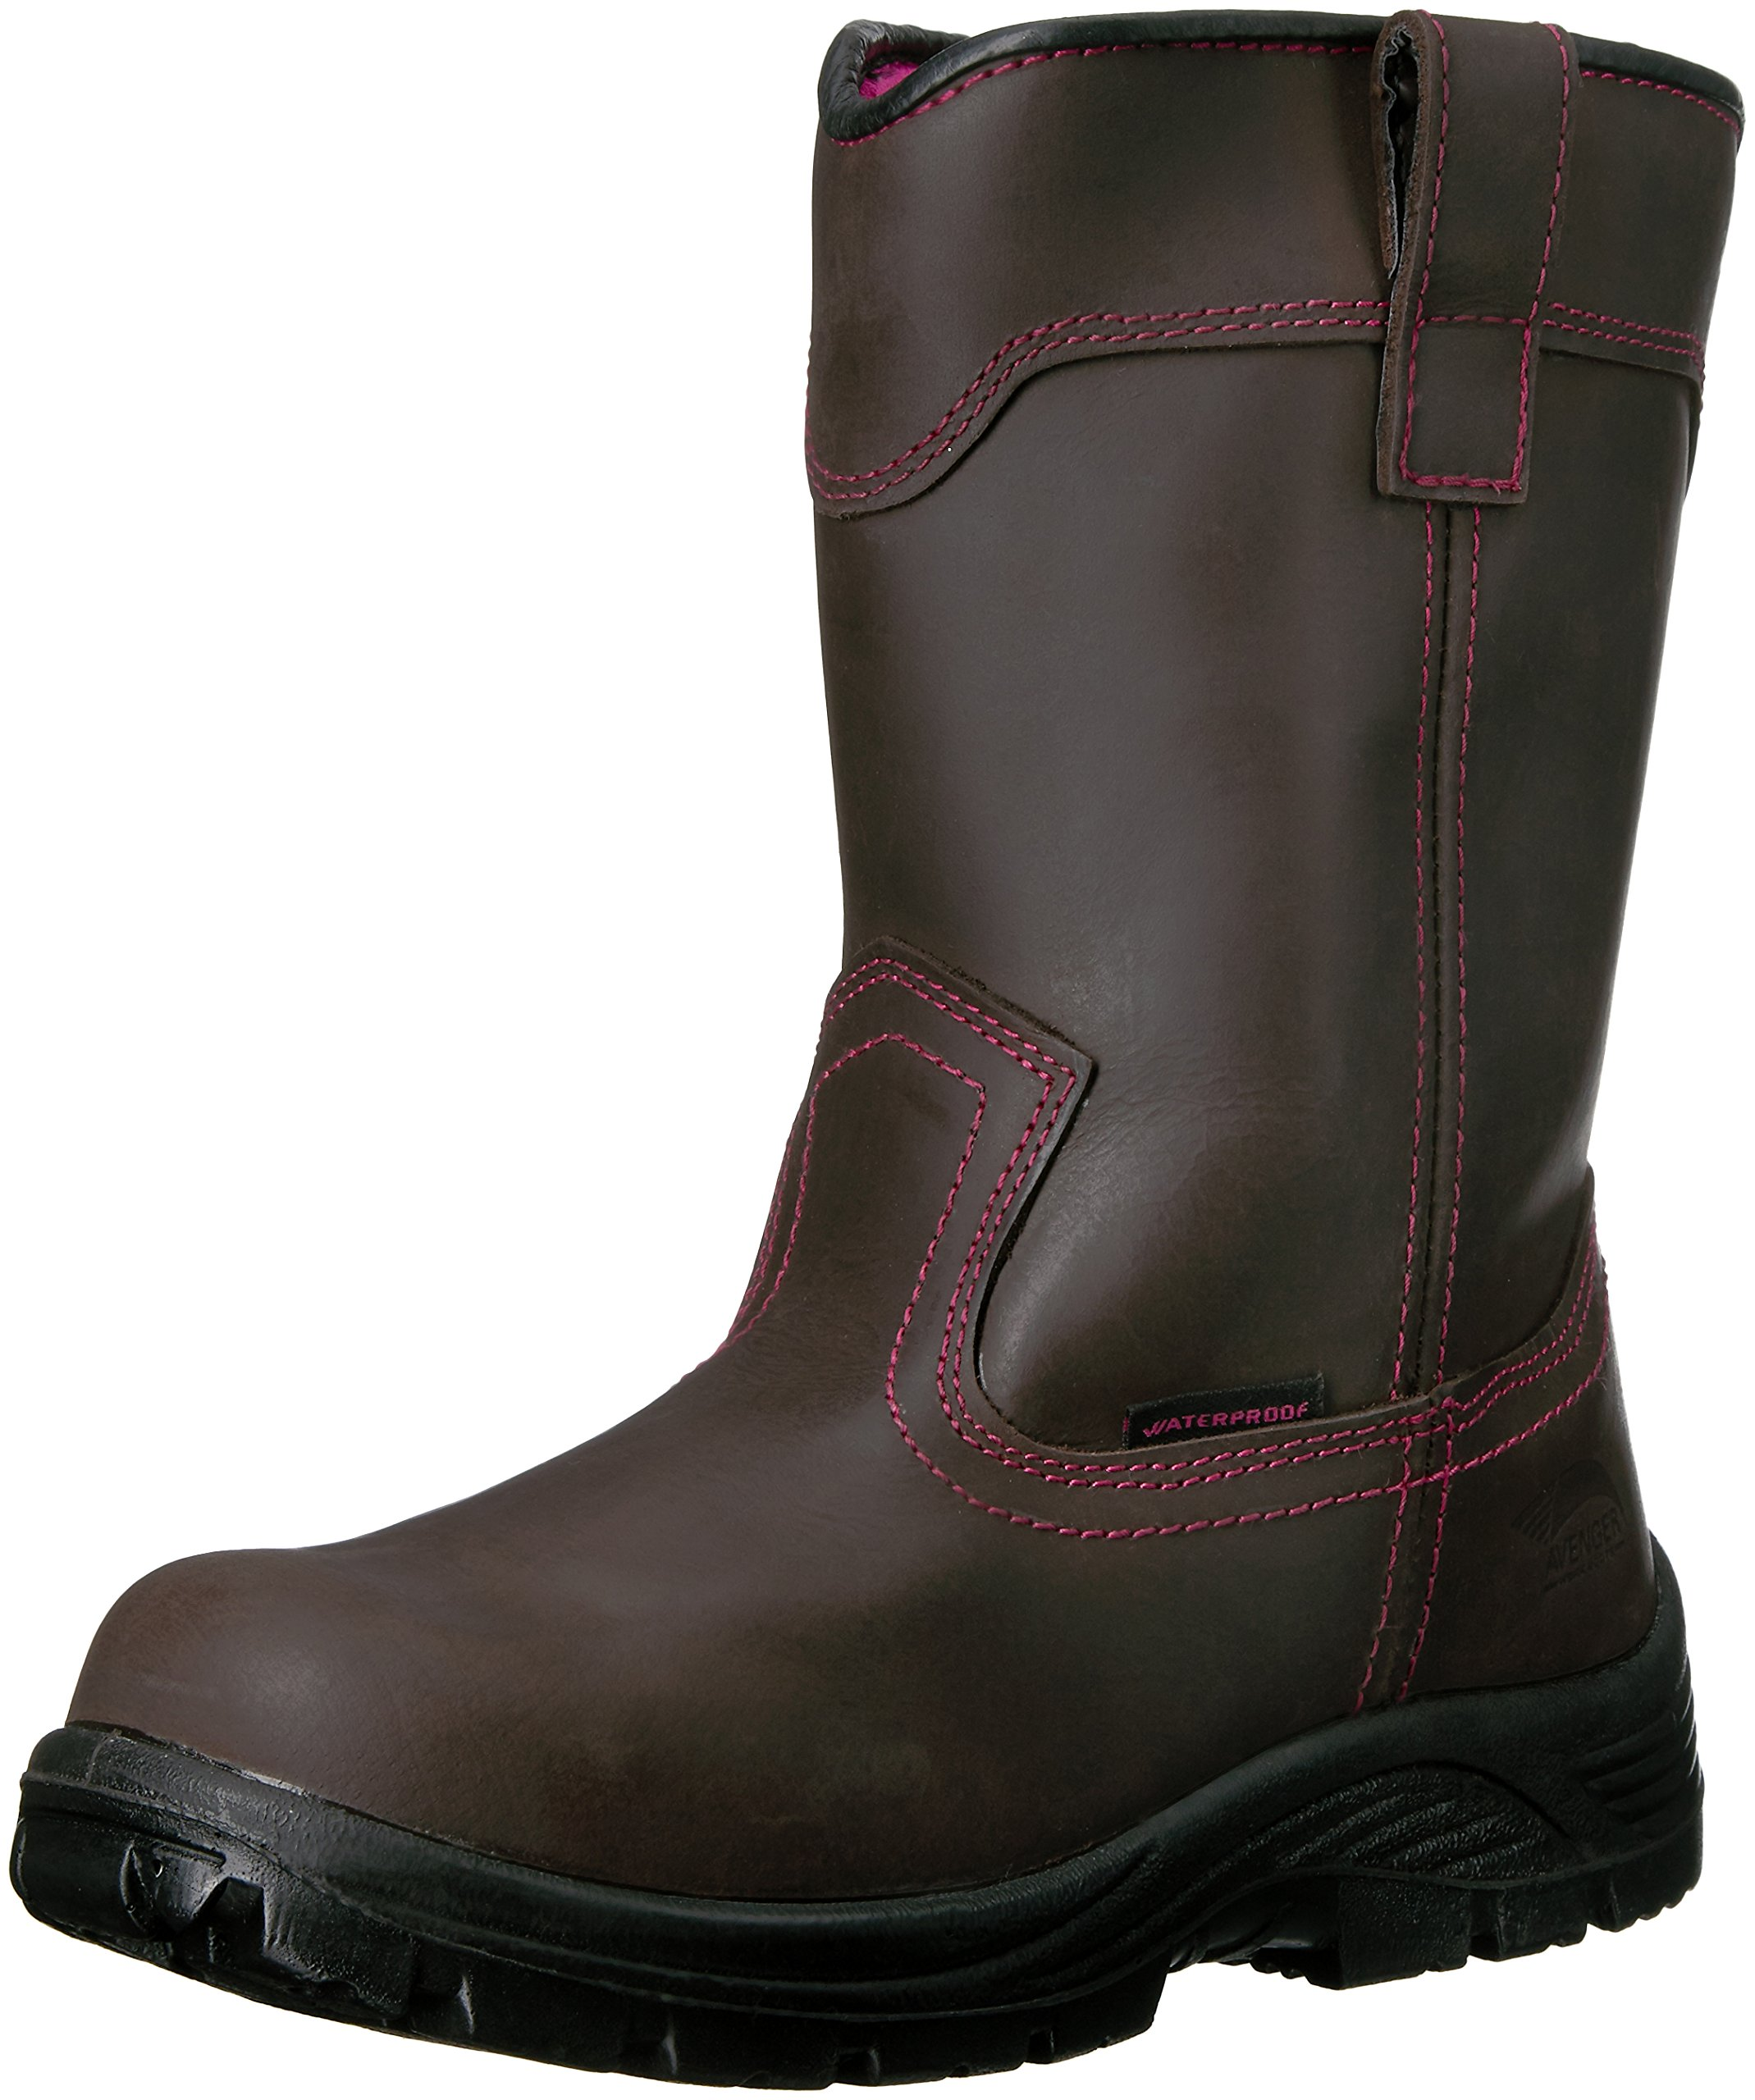 Avenger Safety Footwear Women's Avenger 7146 Comp Toe Waterproof Pull on EH Work Boot Industrial and Construction Shoe, Brown, 7.5 M US